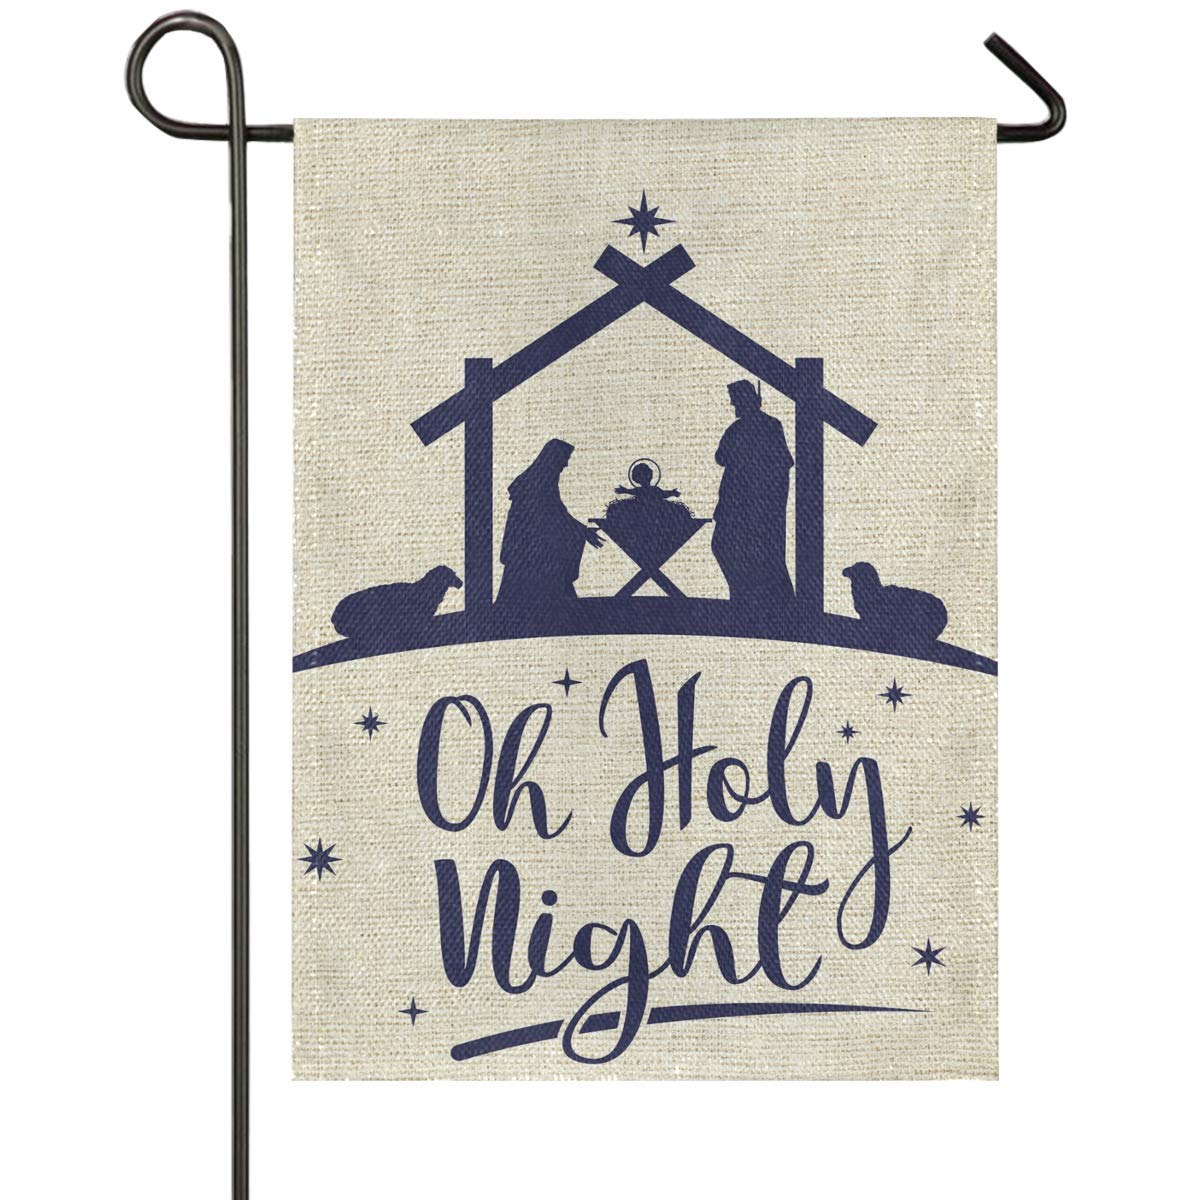 Oh Holy Night Star of Bethlehem Burlap House Flag 28 x 40 Double Sided Traditional Christams Garden Yard Flags Religious Winter Holiday Rustic Outdoor Banner Home Xmas Decor